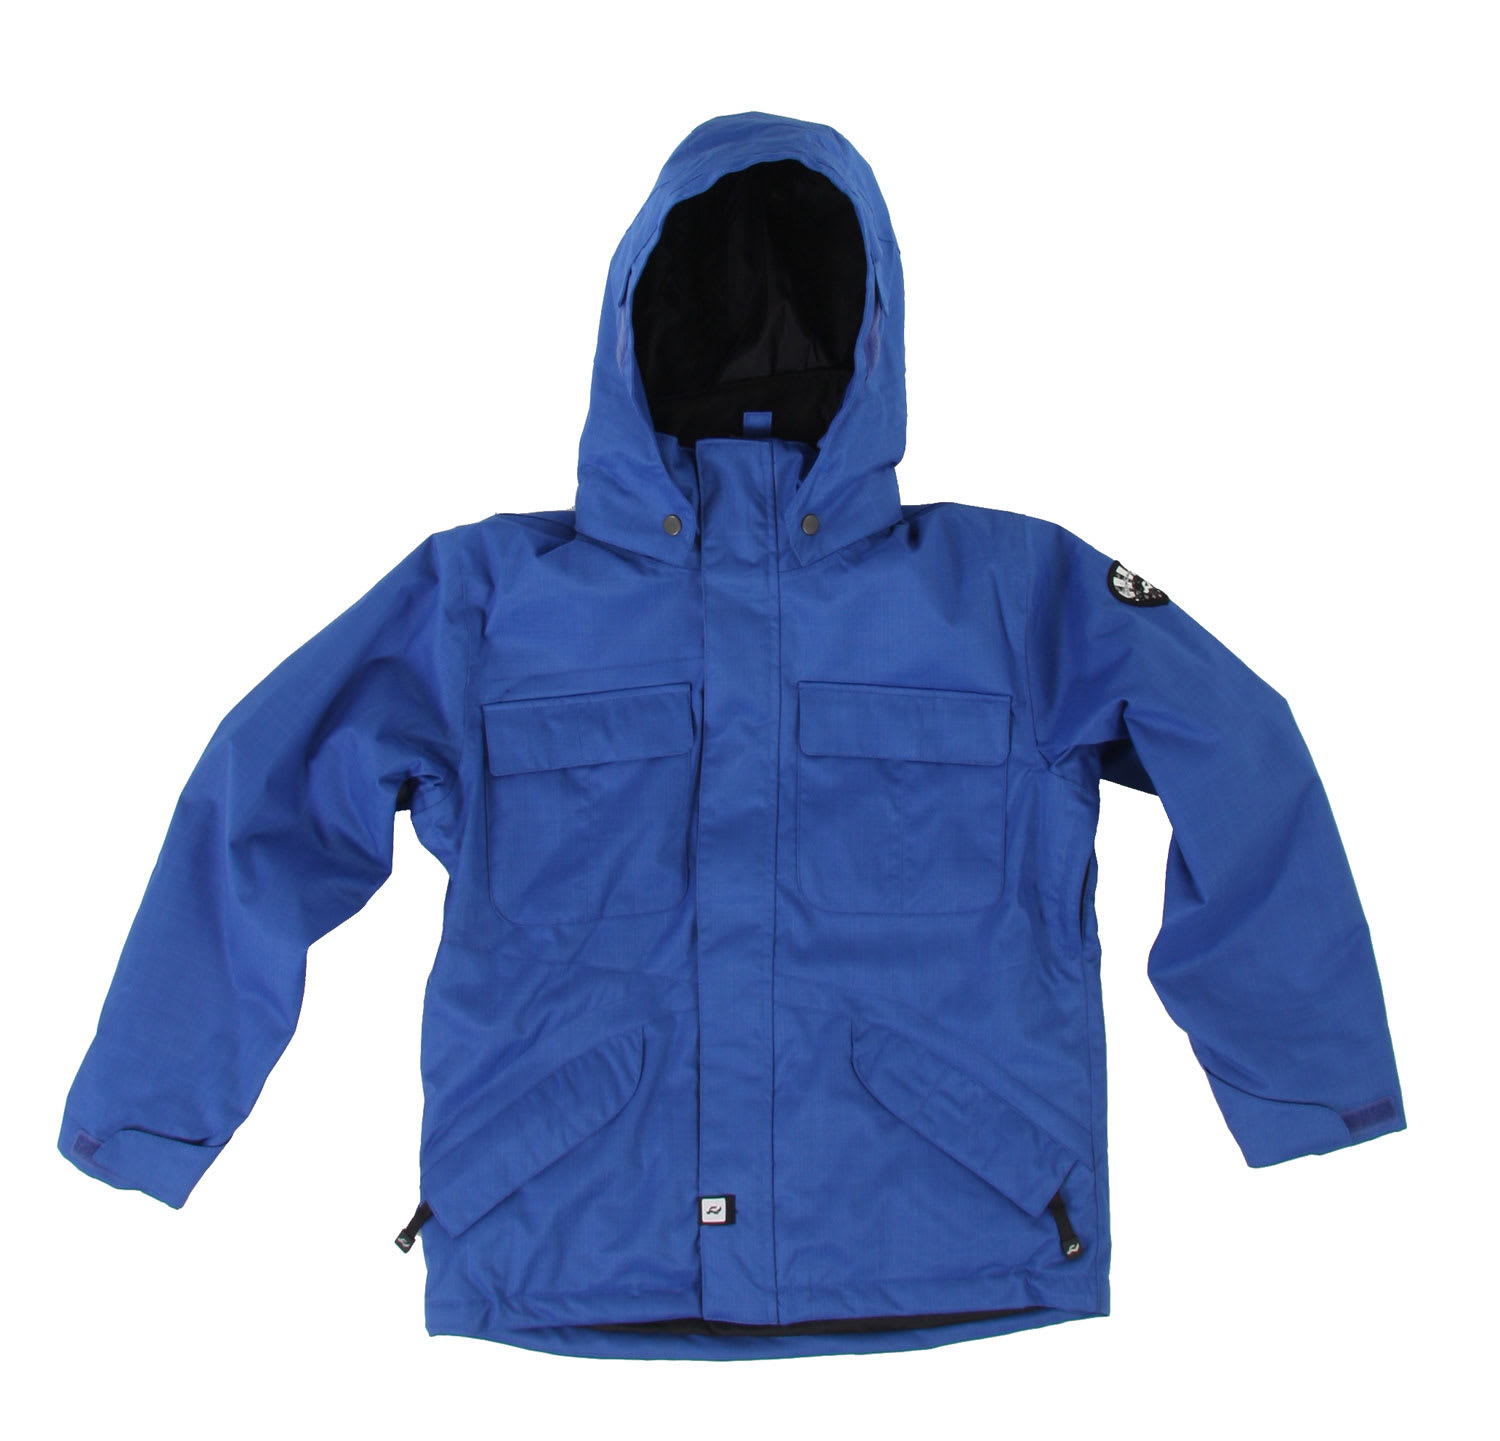 Shop for Ride Nova Snowboard Jacket Electric Blue - Kid's